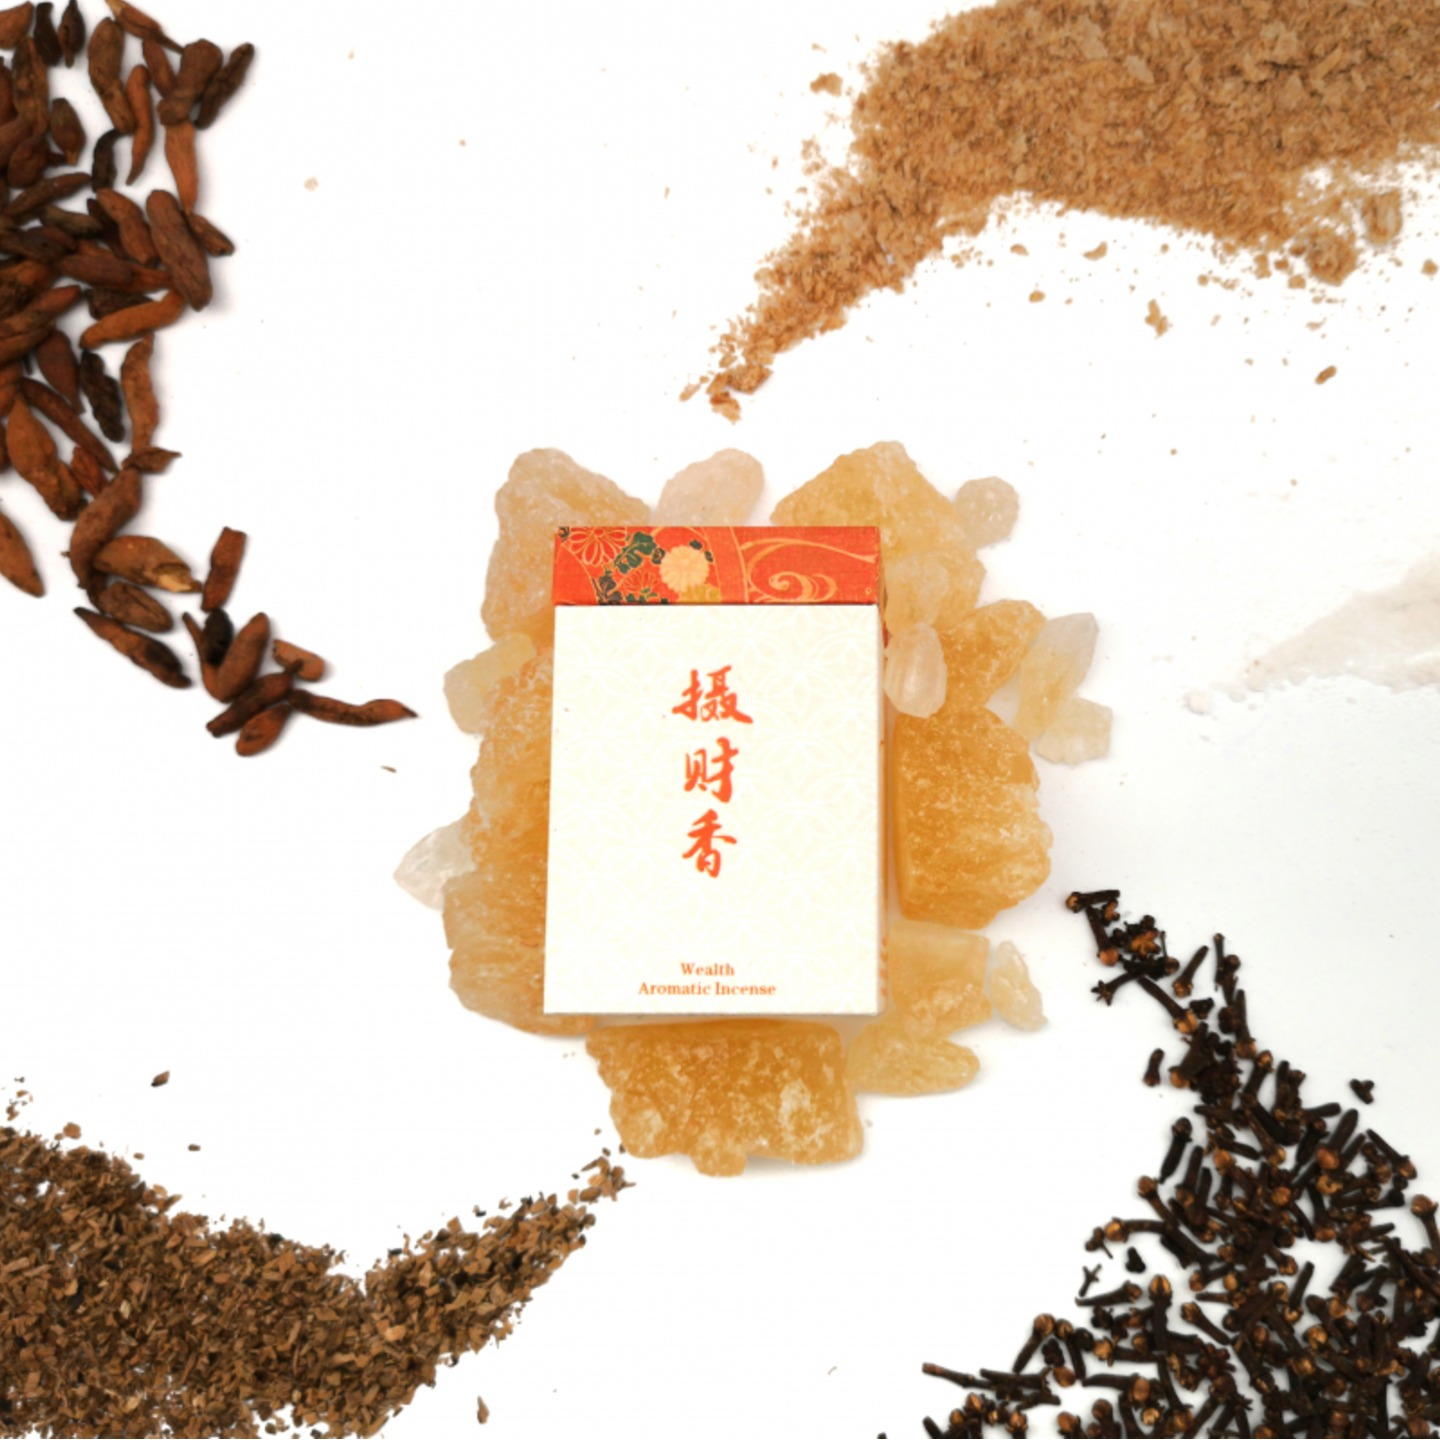 Wealth Aromatic Incense